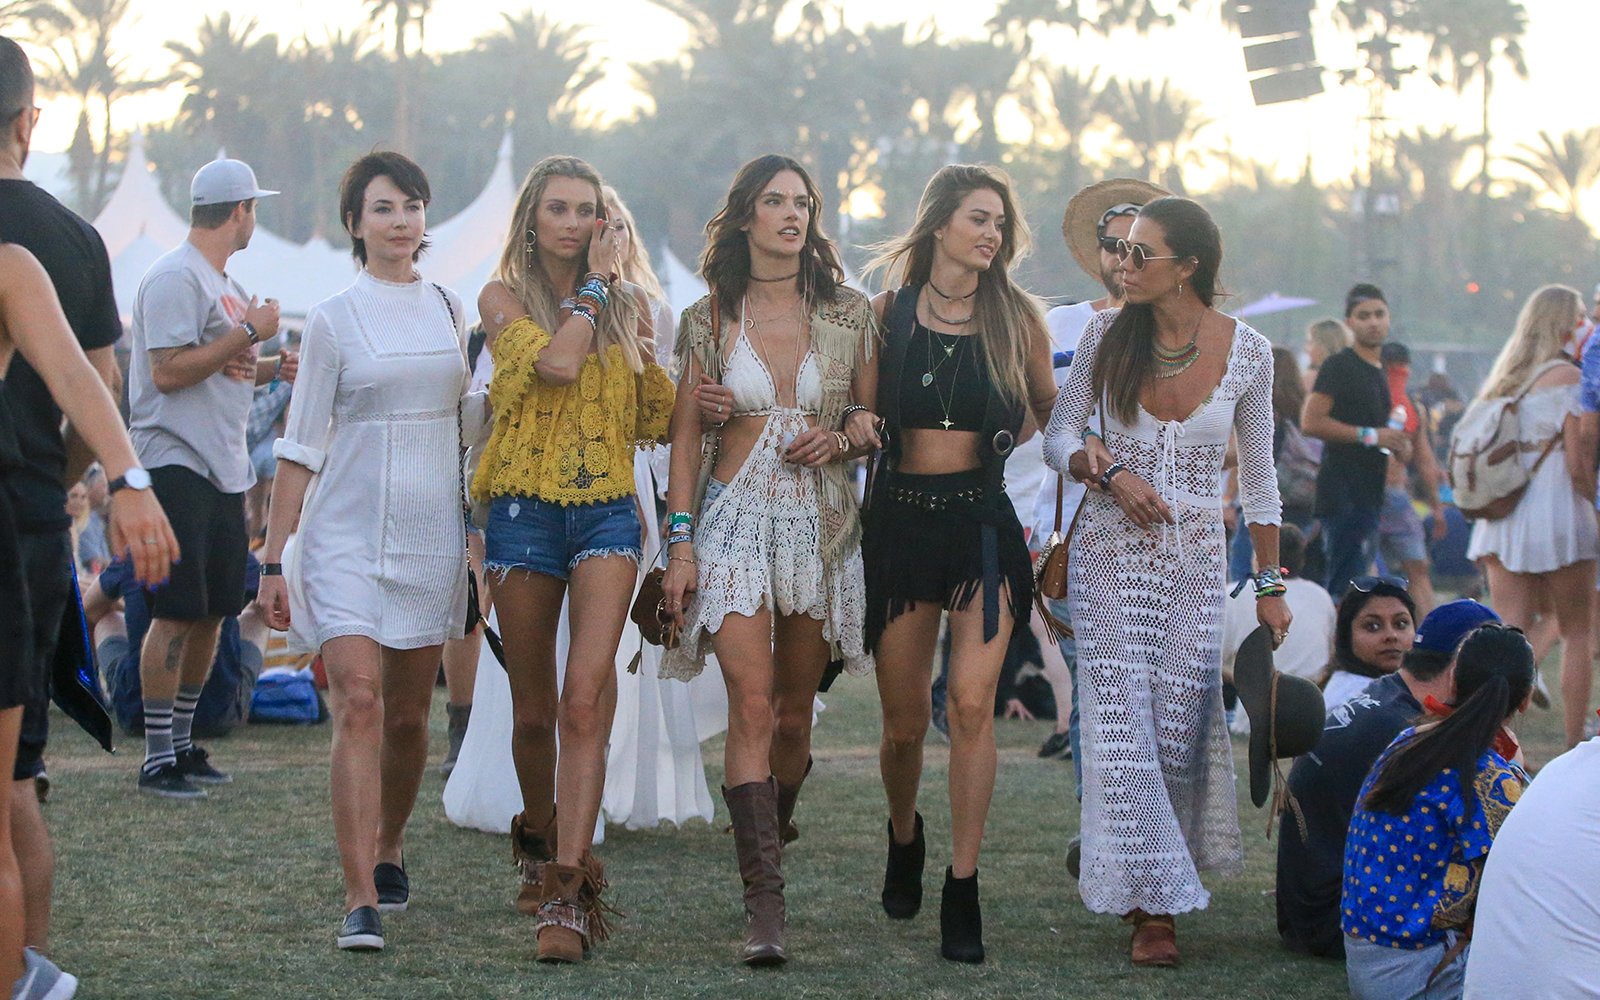 Celebrities walking through Coachella music festival